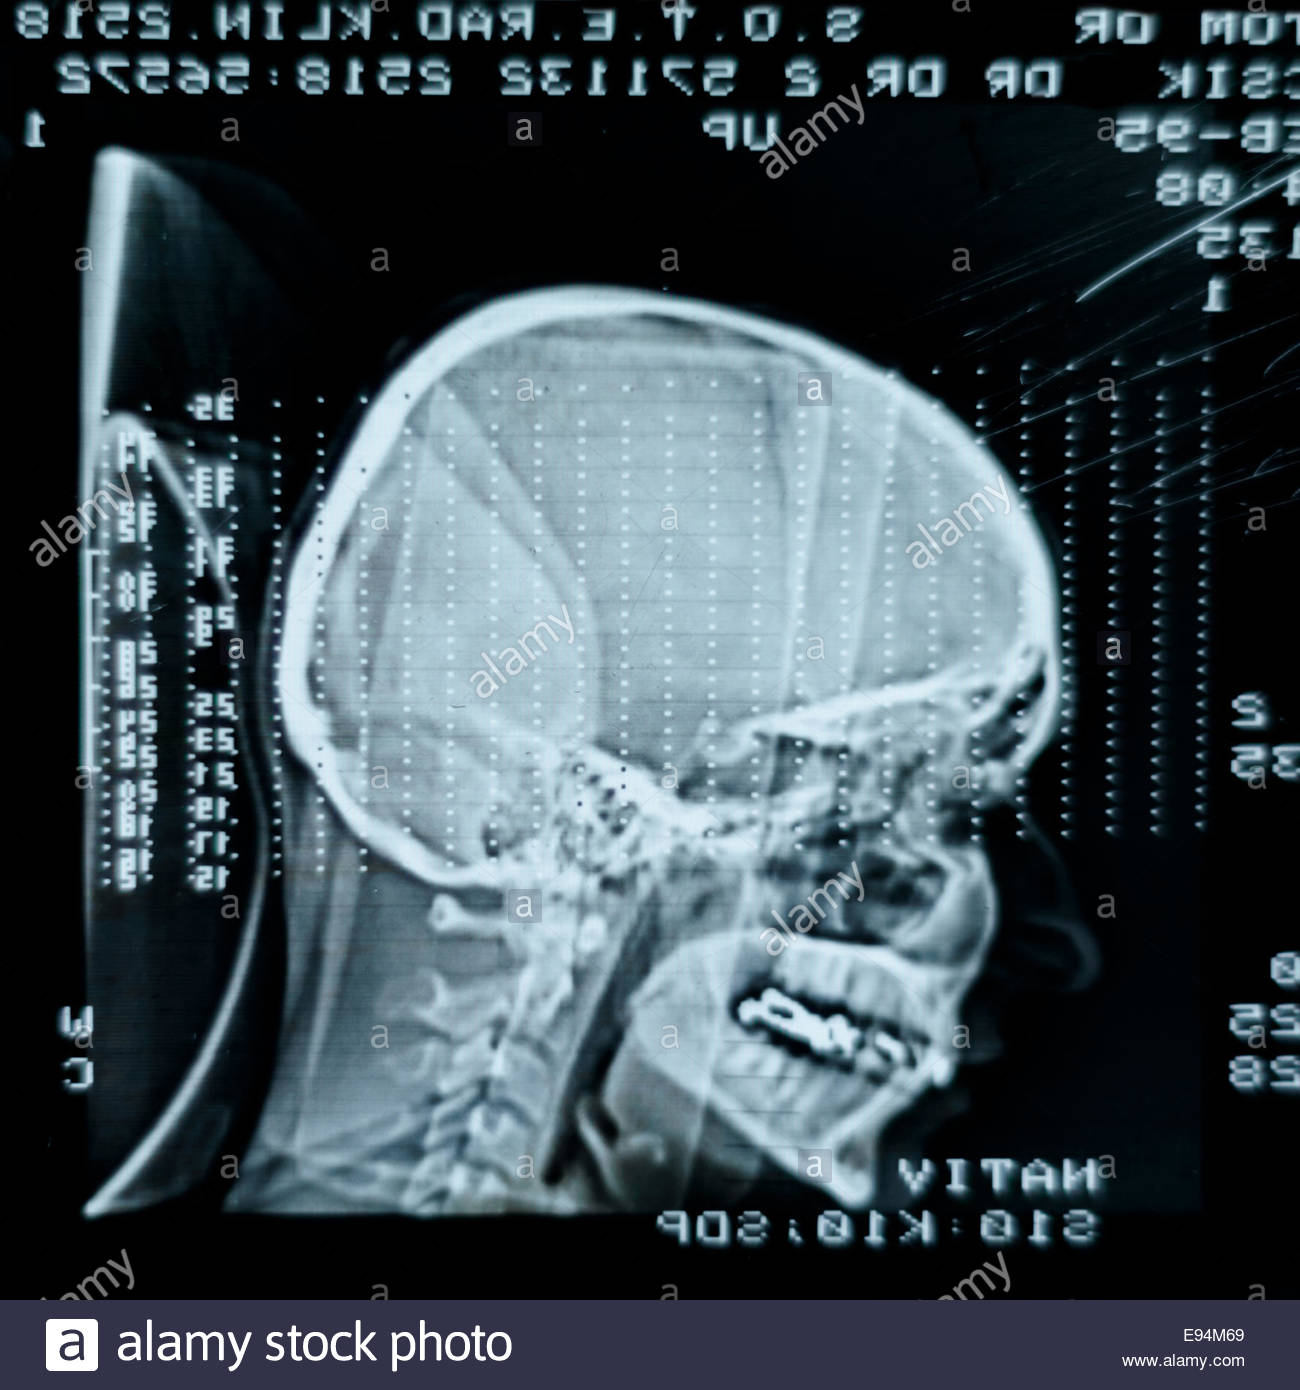 Glowing and radiant MRI scan - Stock Image